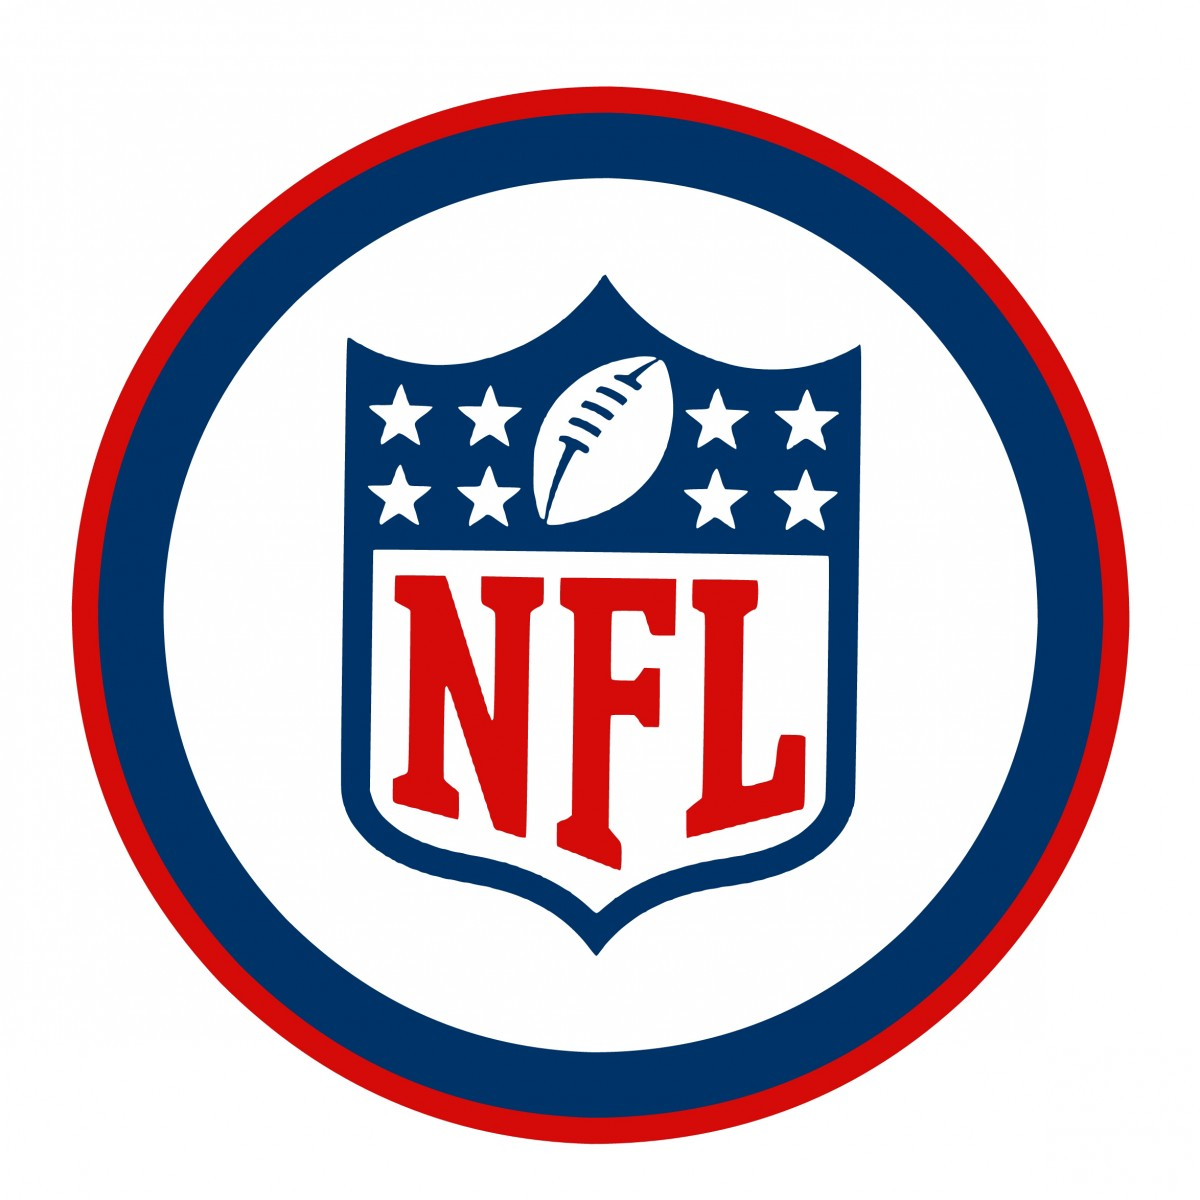 Nfl clipart graphic free library Free Images : nfl, national, football, league, logo, icon ... graphic free library